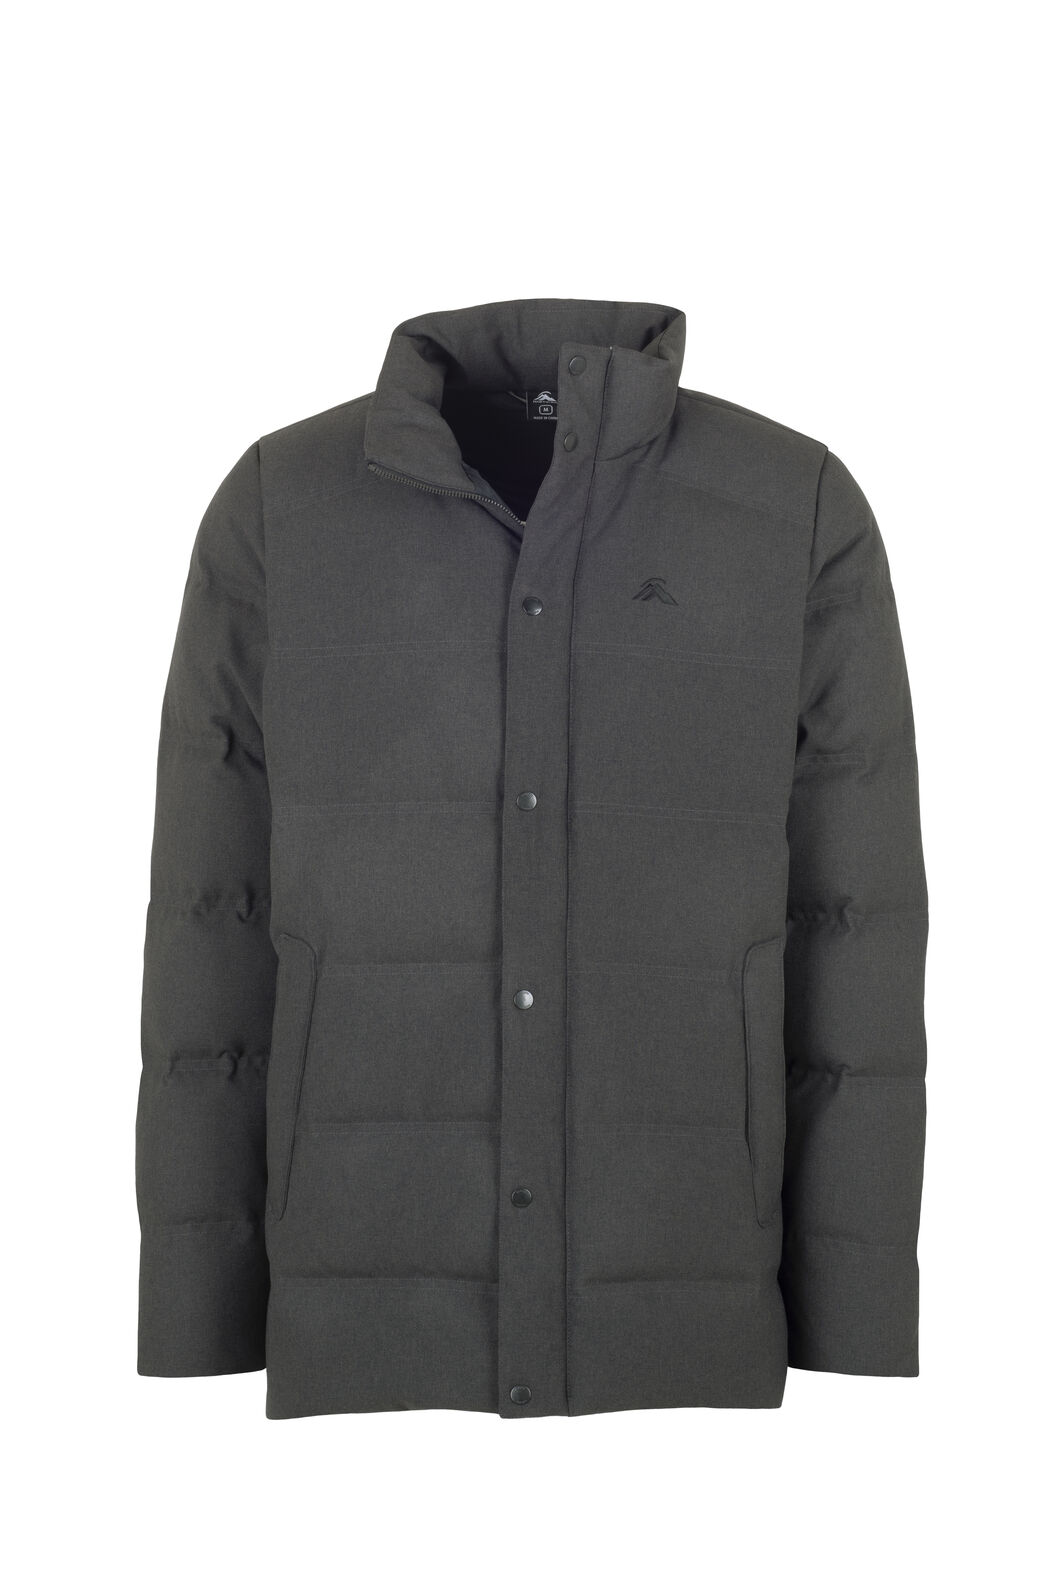 Macpac Meridian Down Jacket - Men's, Charcoal Marle, hi-res